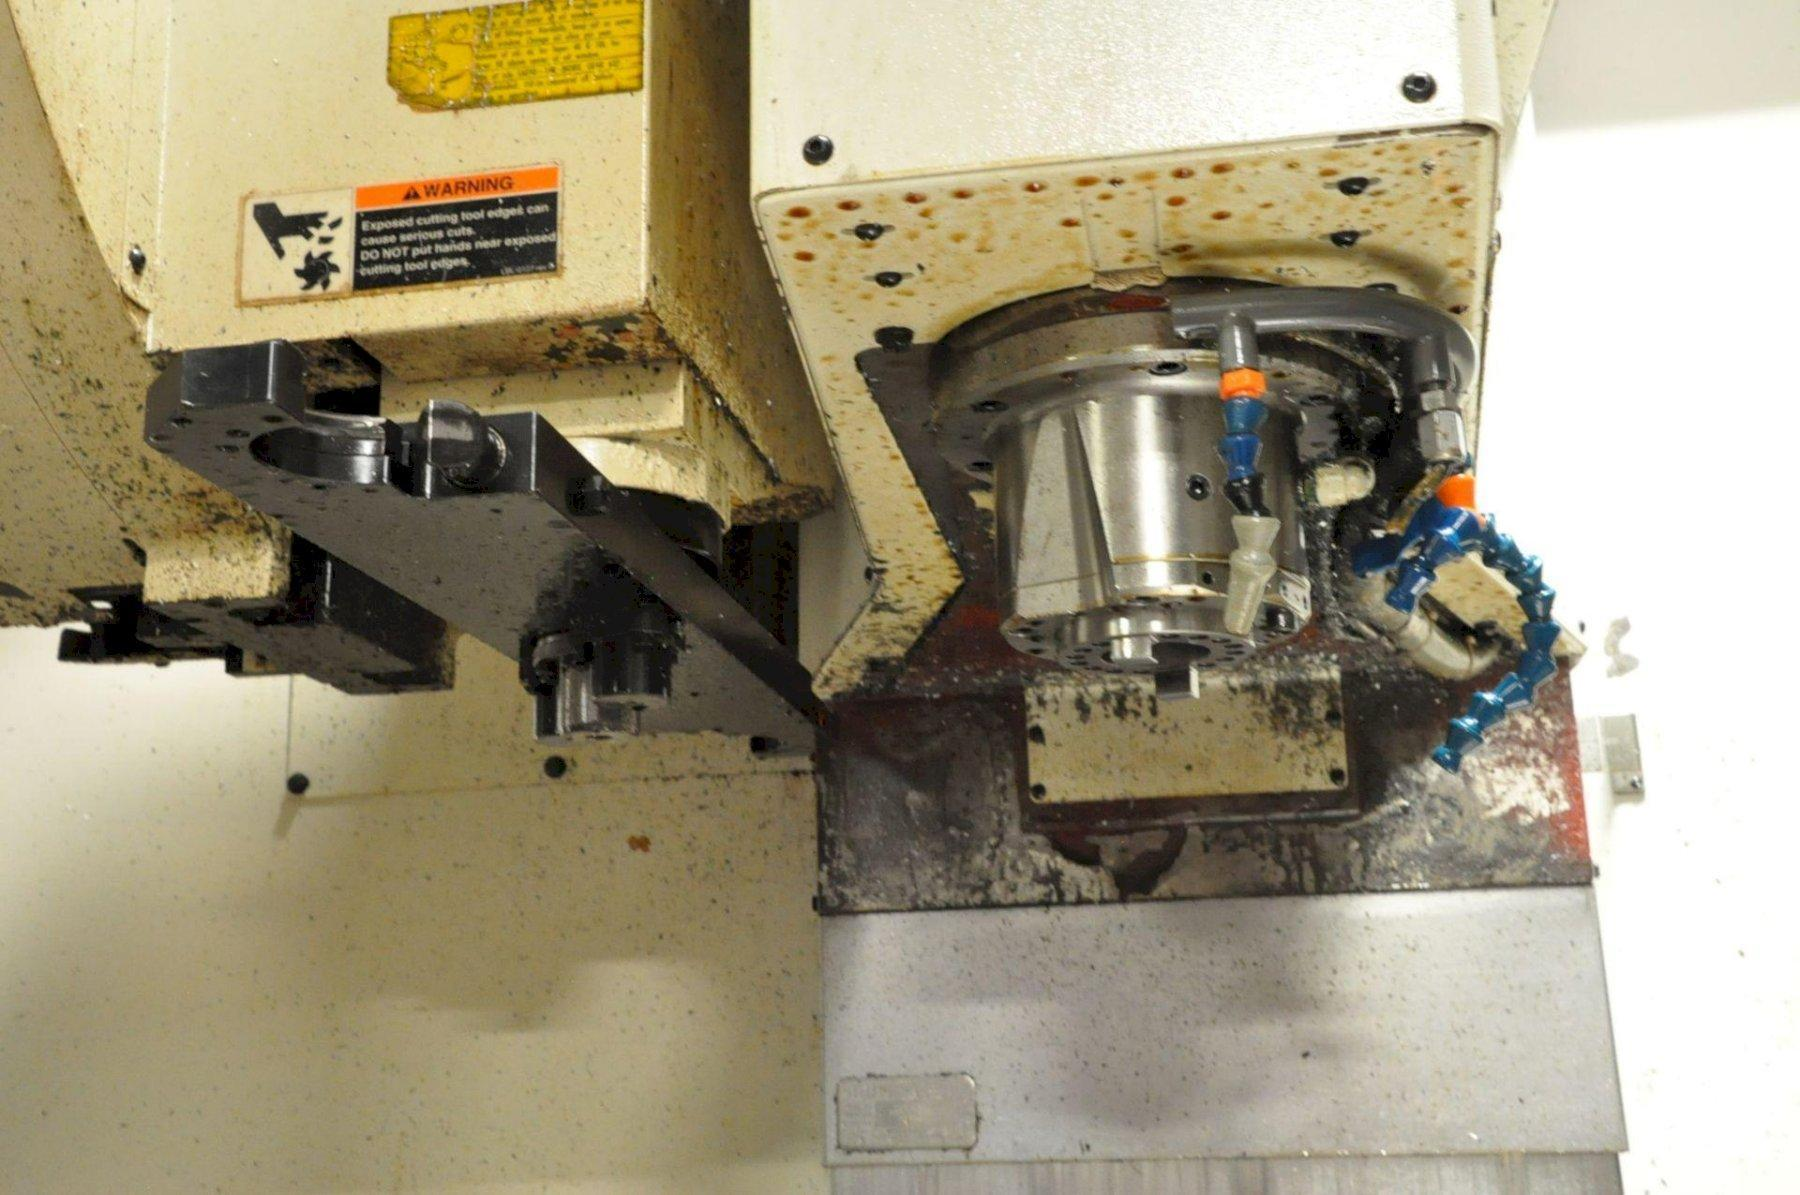 USED FADAL MODEL 4525HT CNC VERTICAL MACHINING CENTER, Stock # 10816, Year: 2007